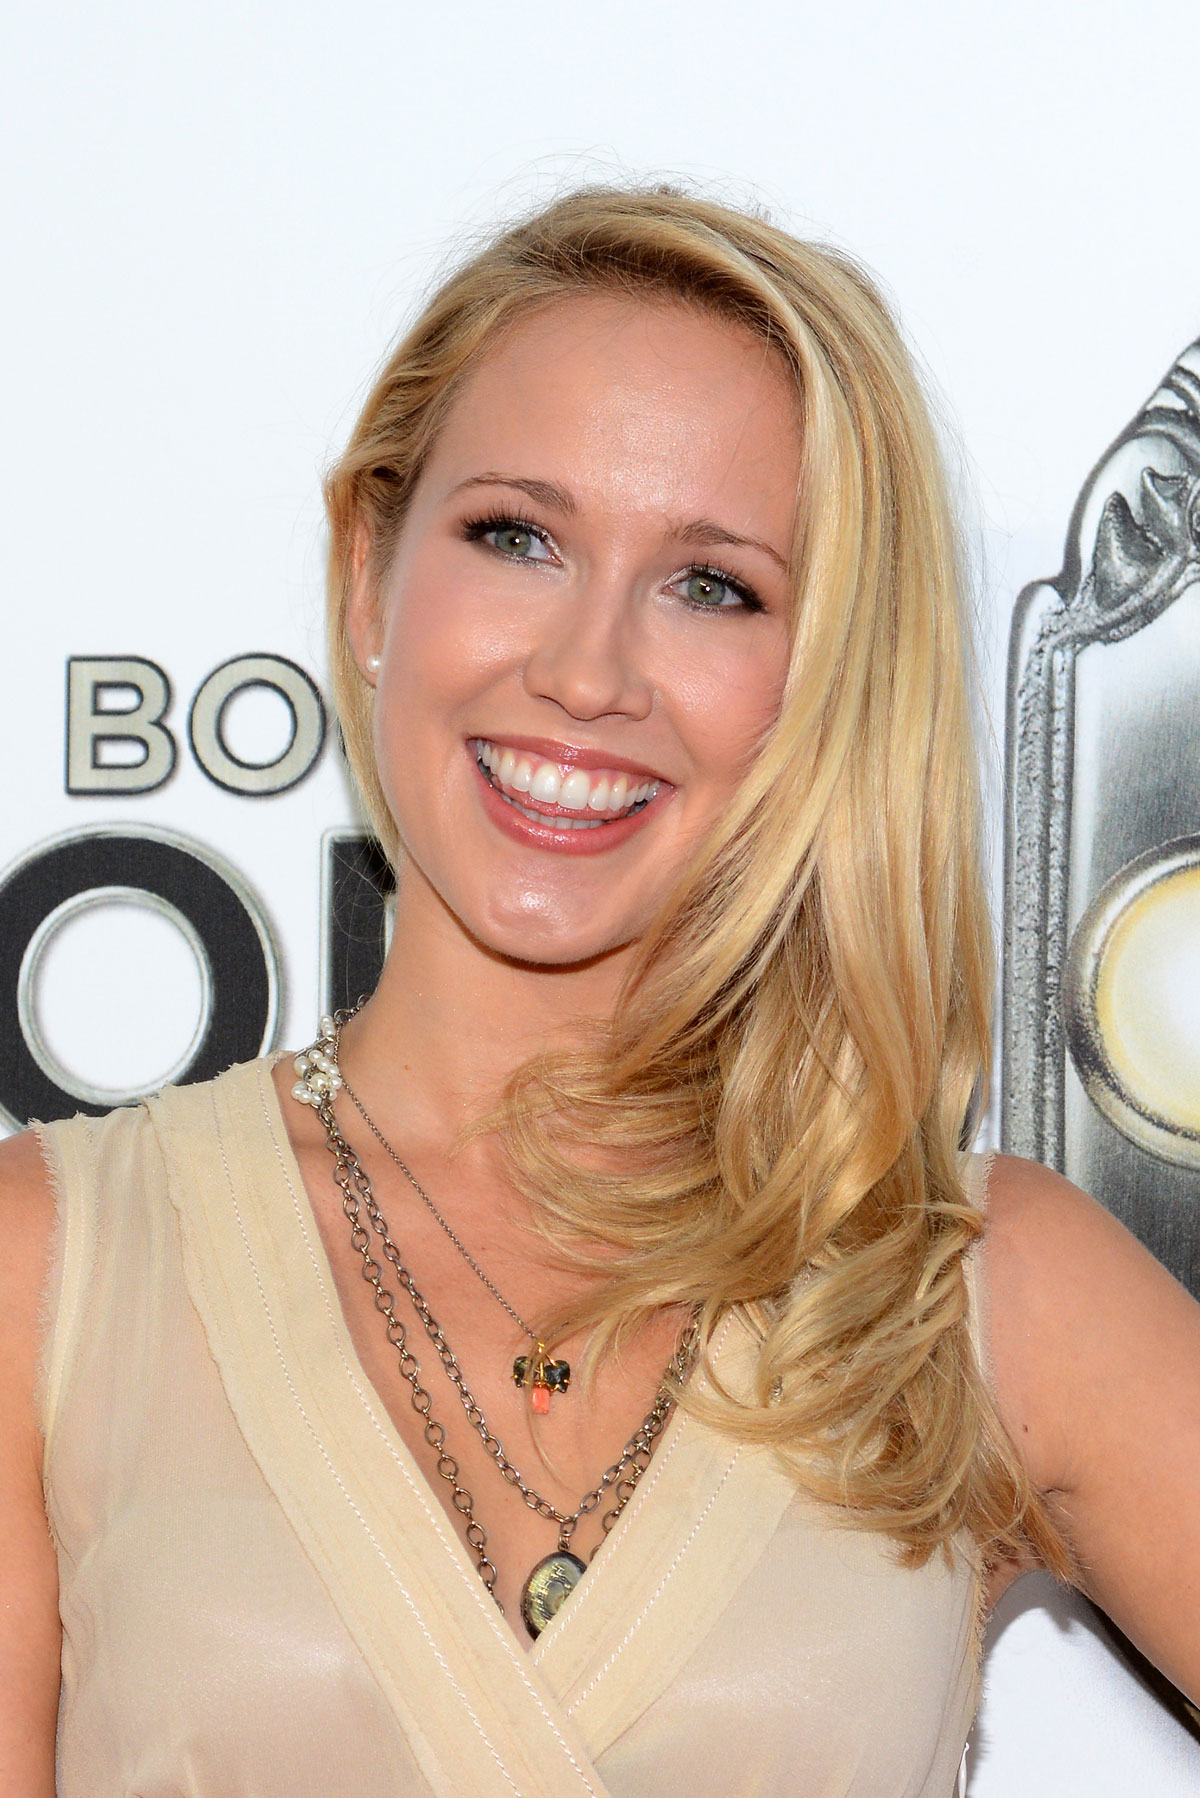 ANNA CAMP at The Book of Mormon Premiere in Los Angeles ...